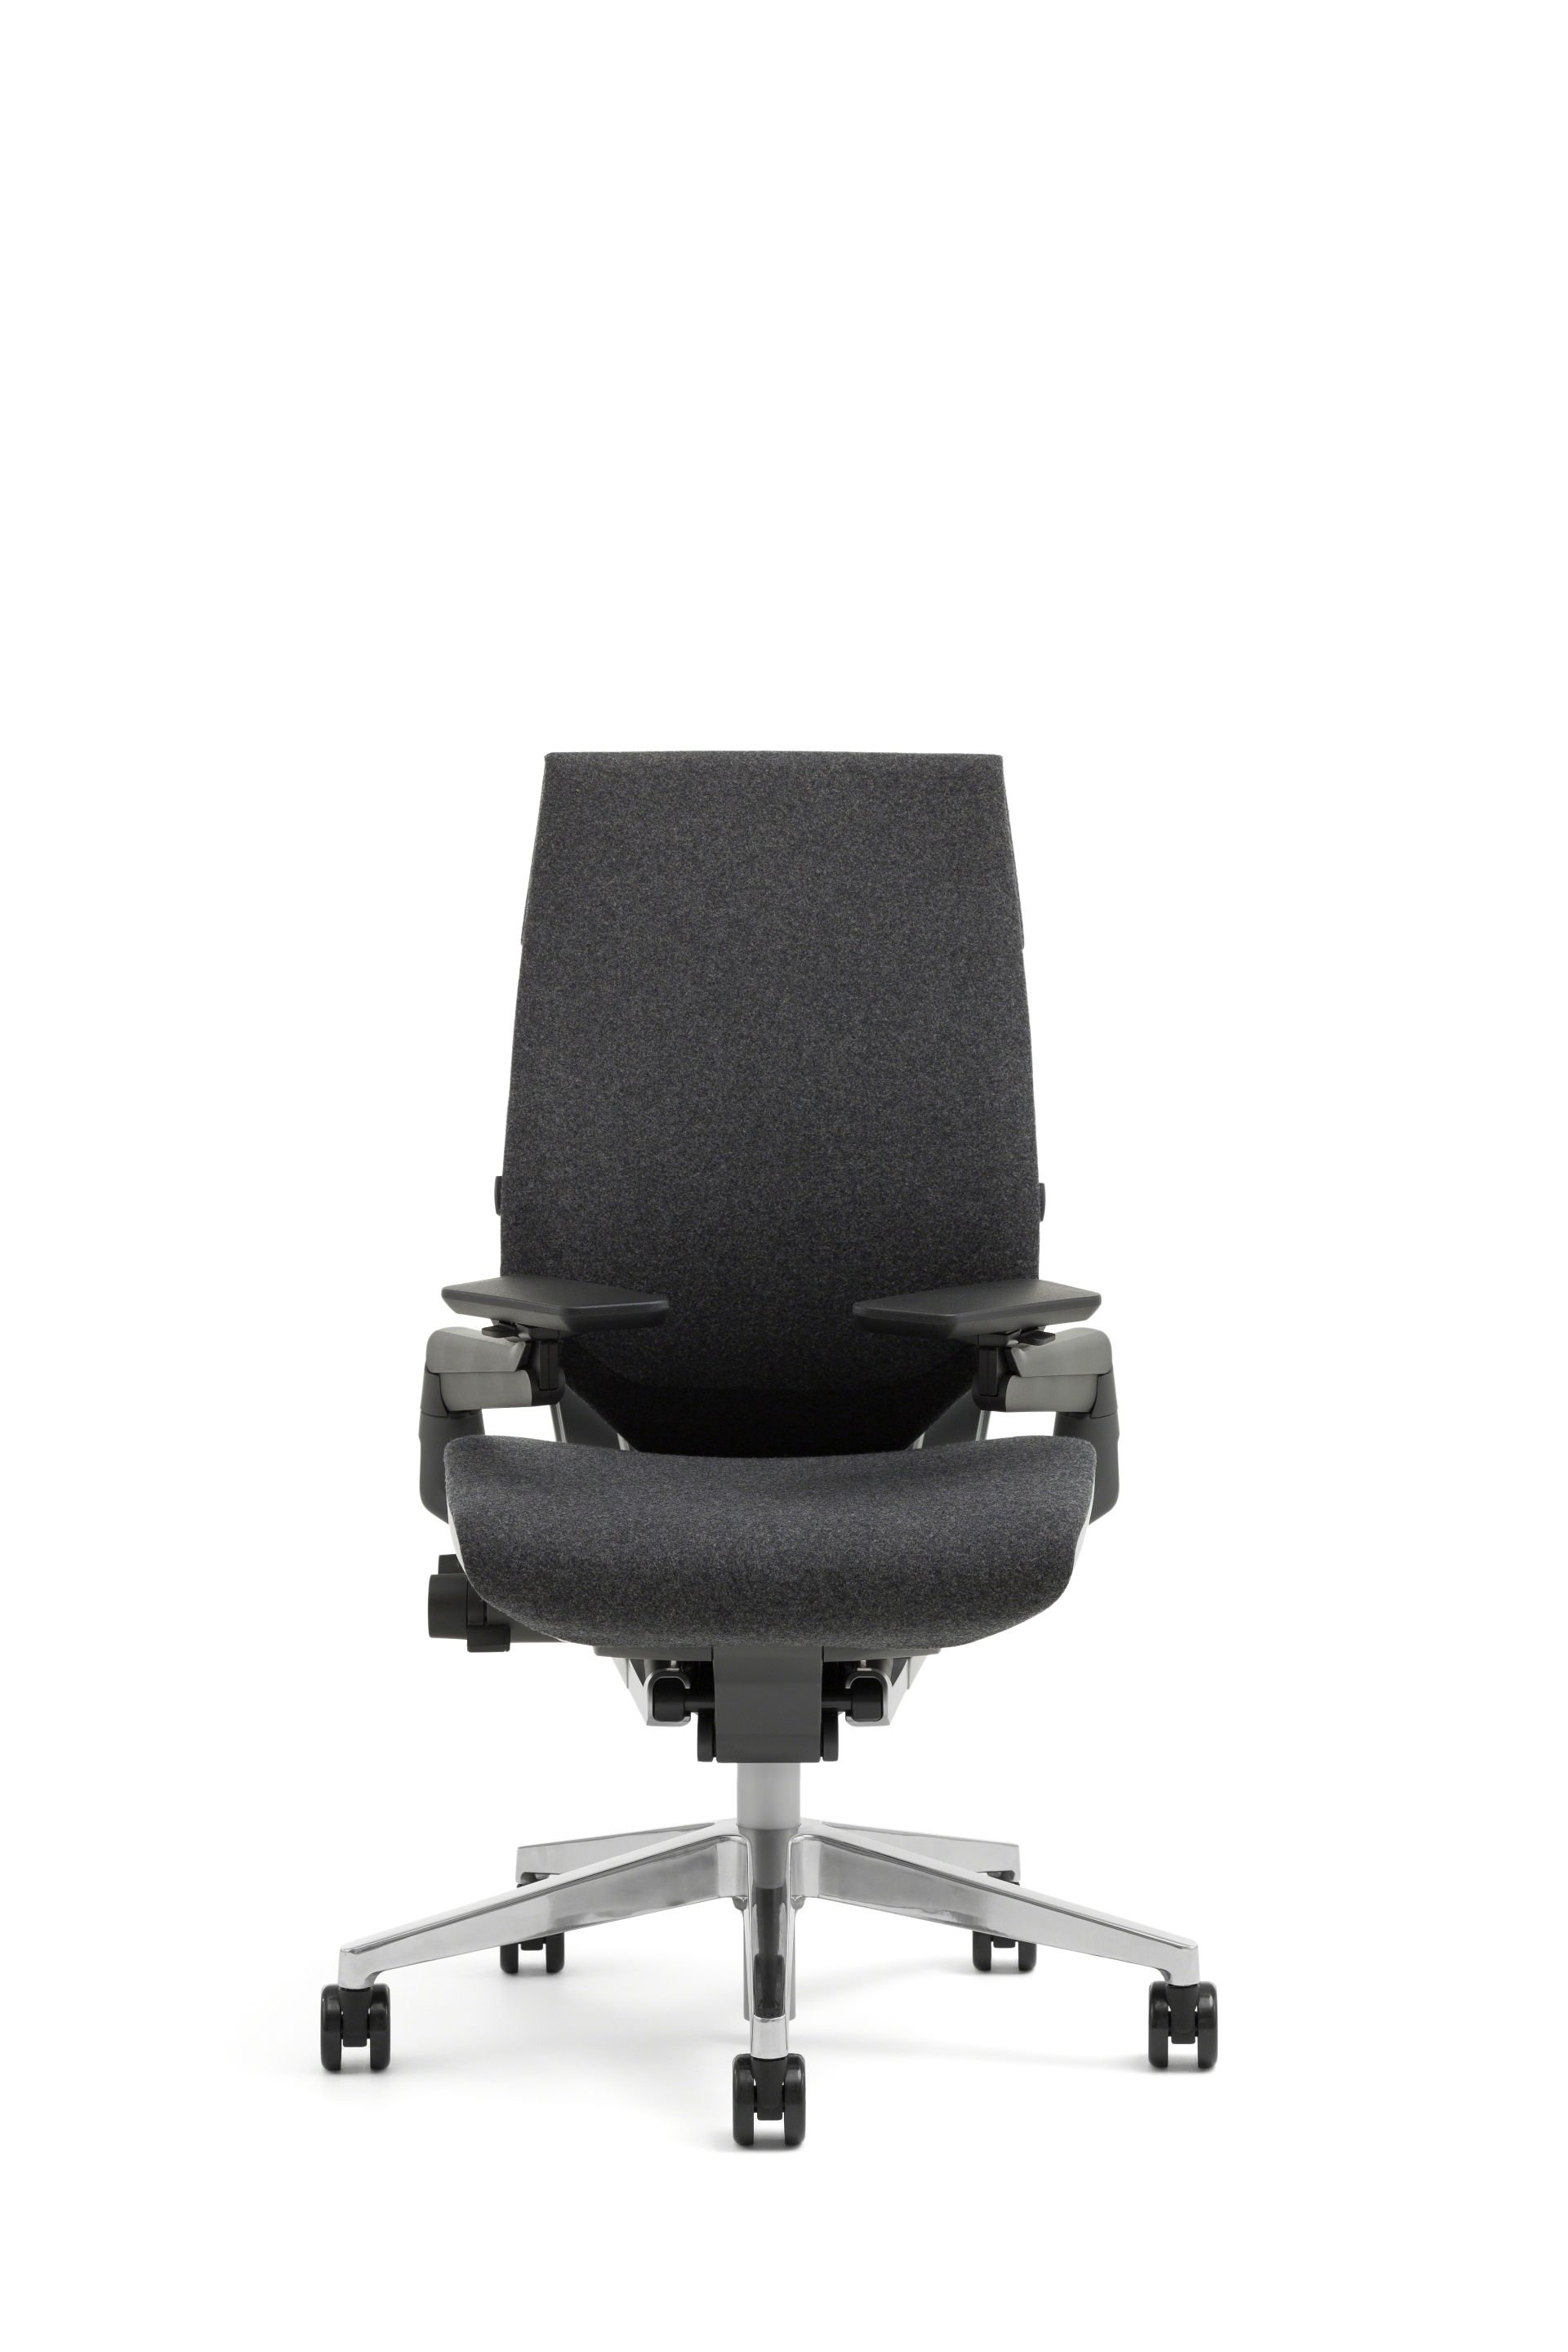 steelcase gesture chair review pub table with swivel chairs task love that design